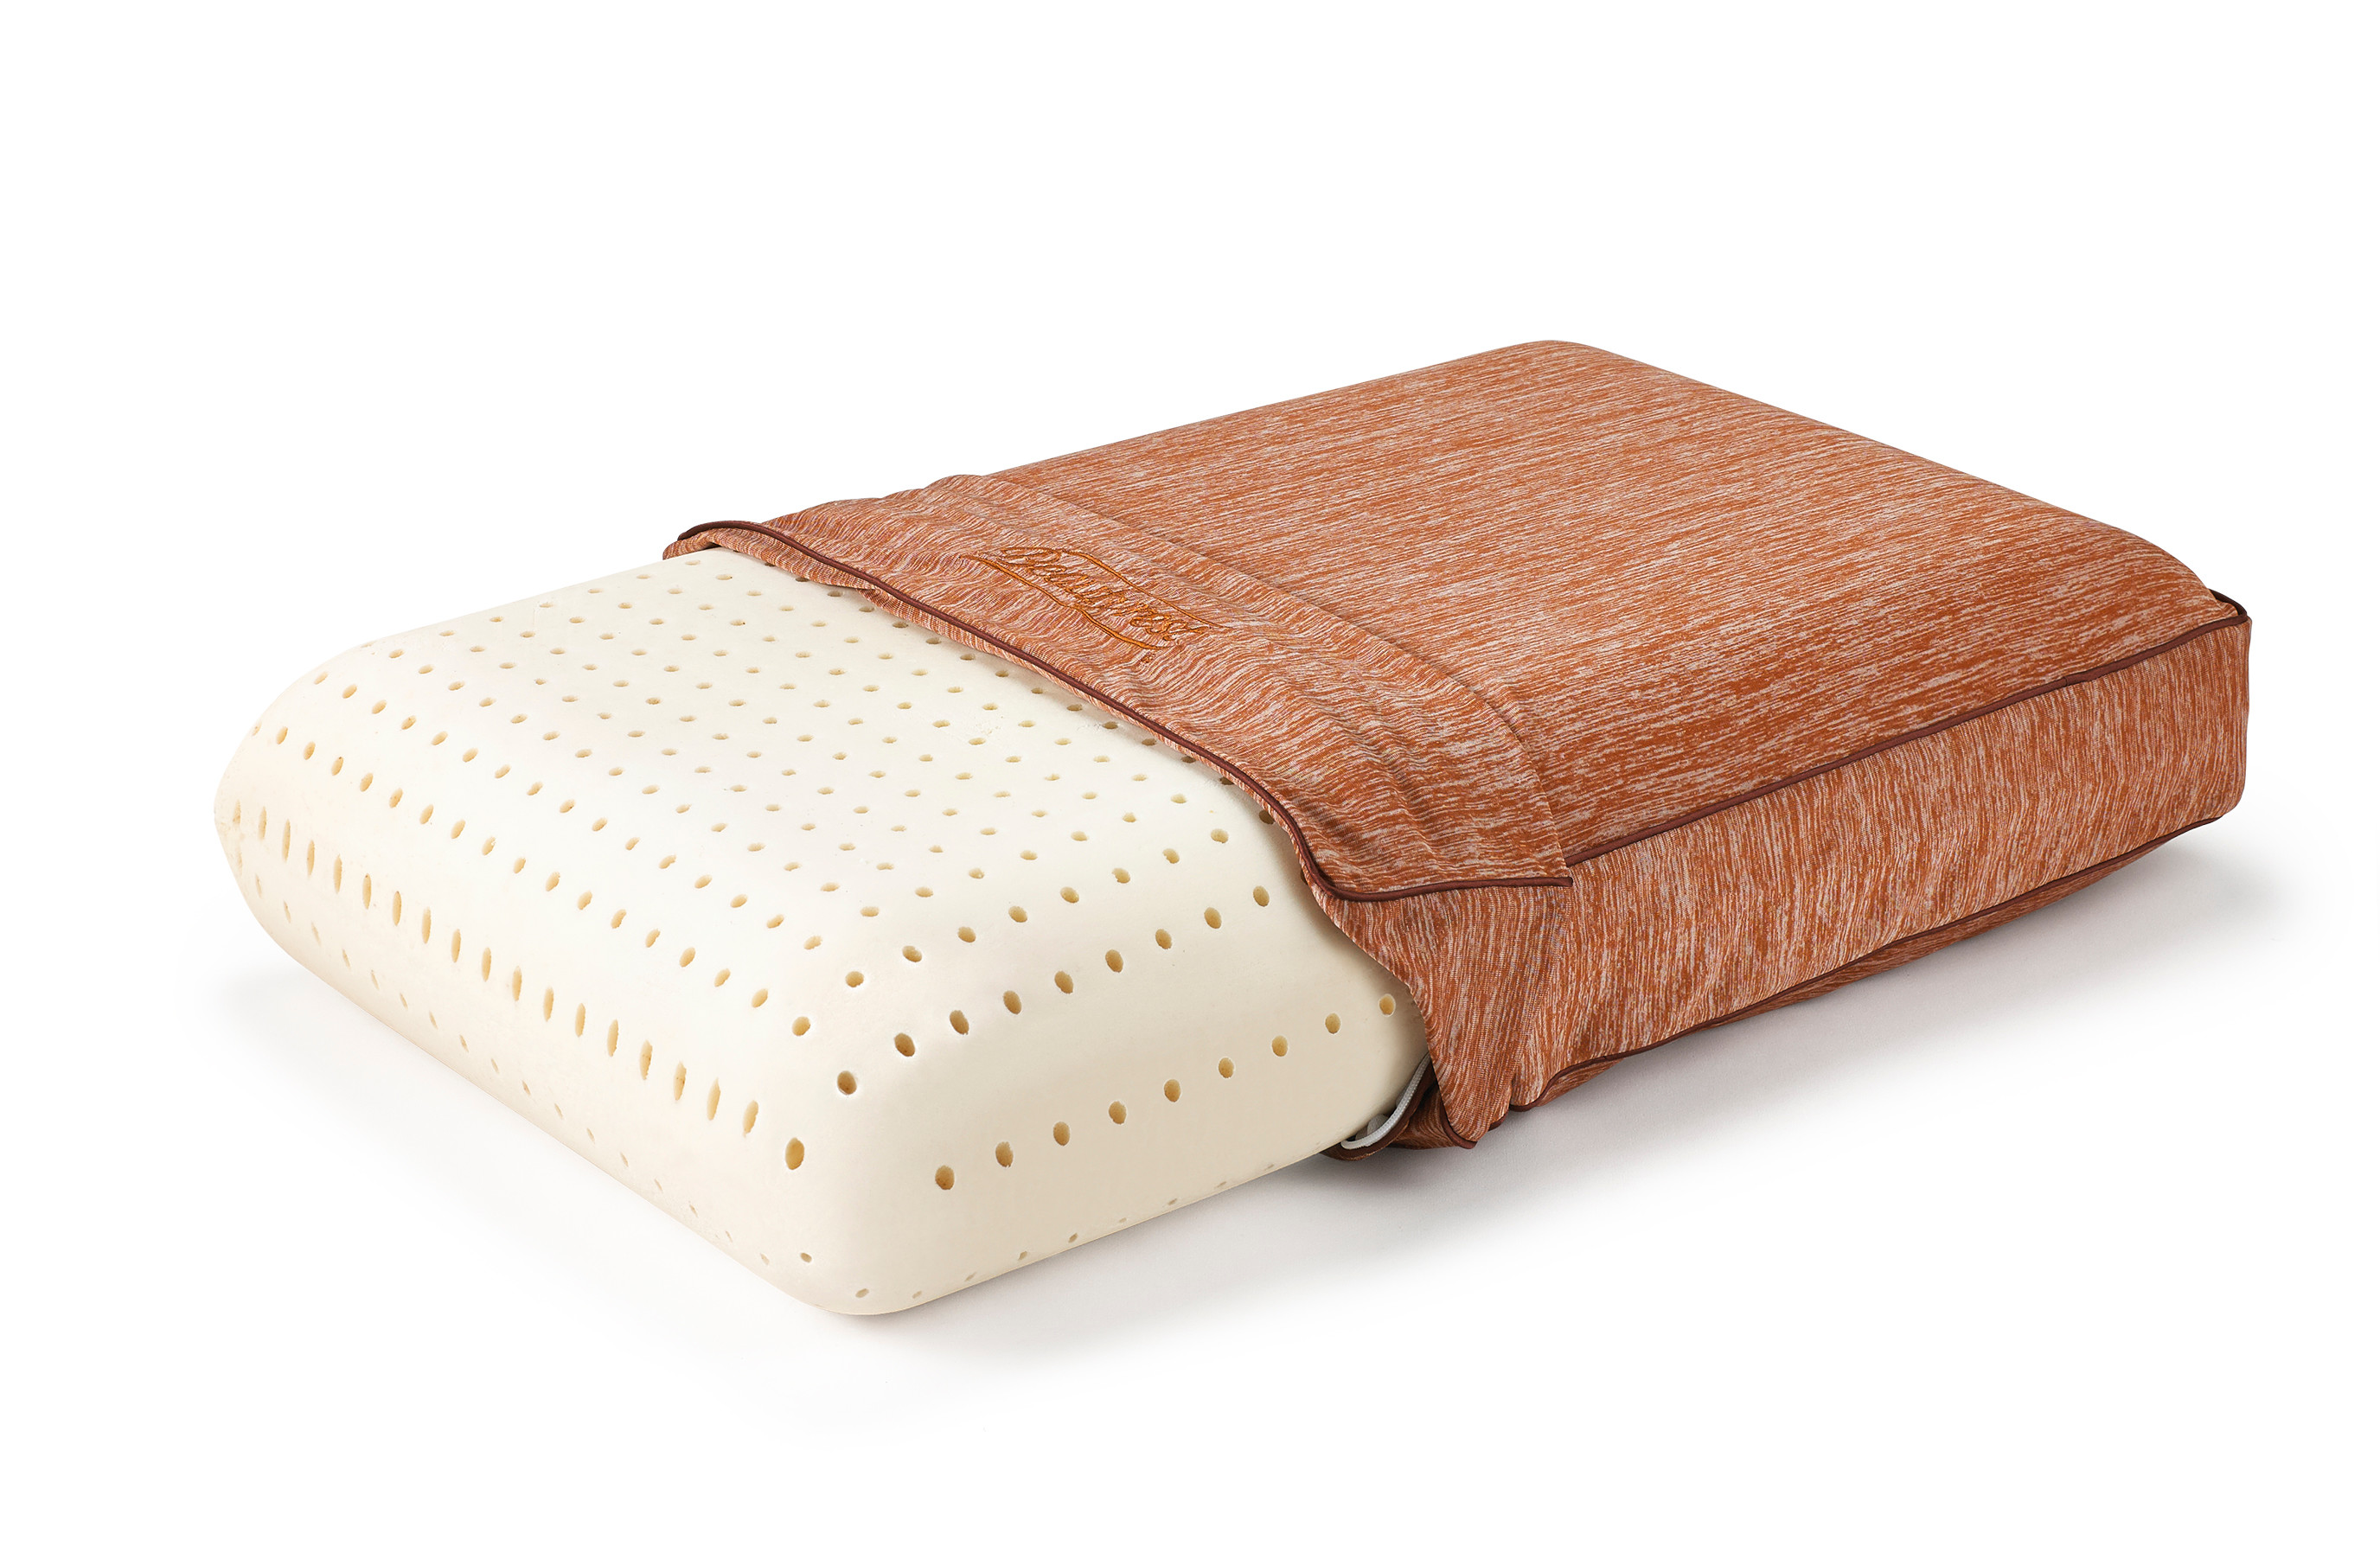 5cdfe1598e95 Beautyrest Copper Gel Memory Foam Pillow with Removable Cover - Walmart.com